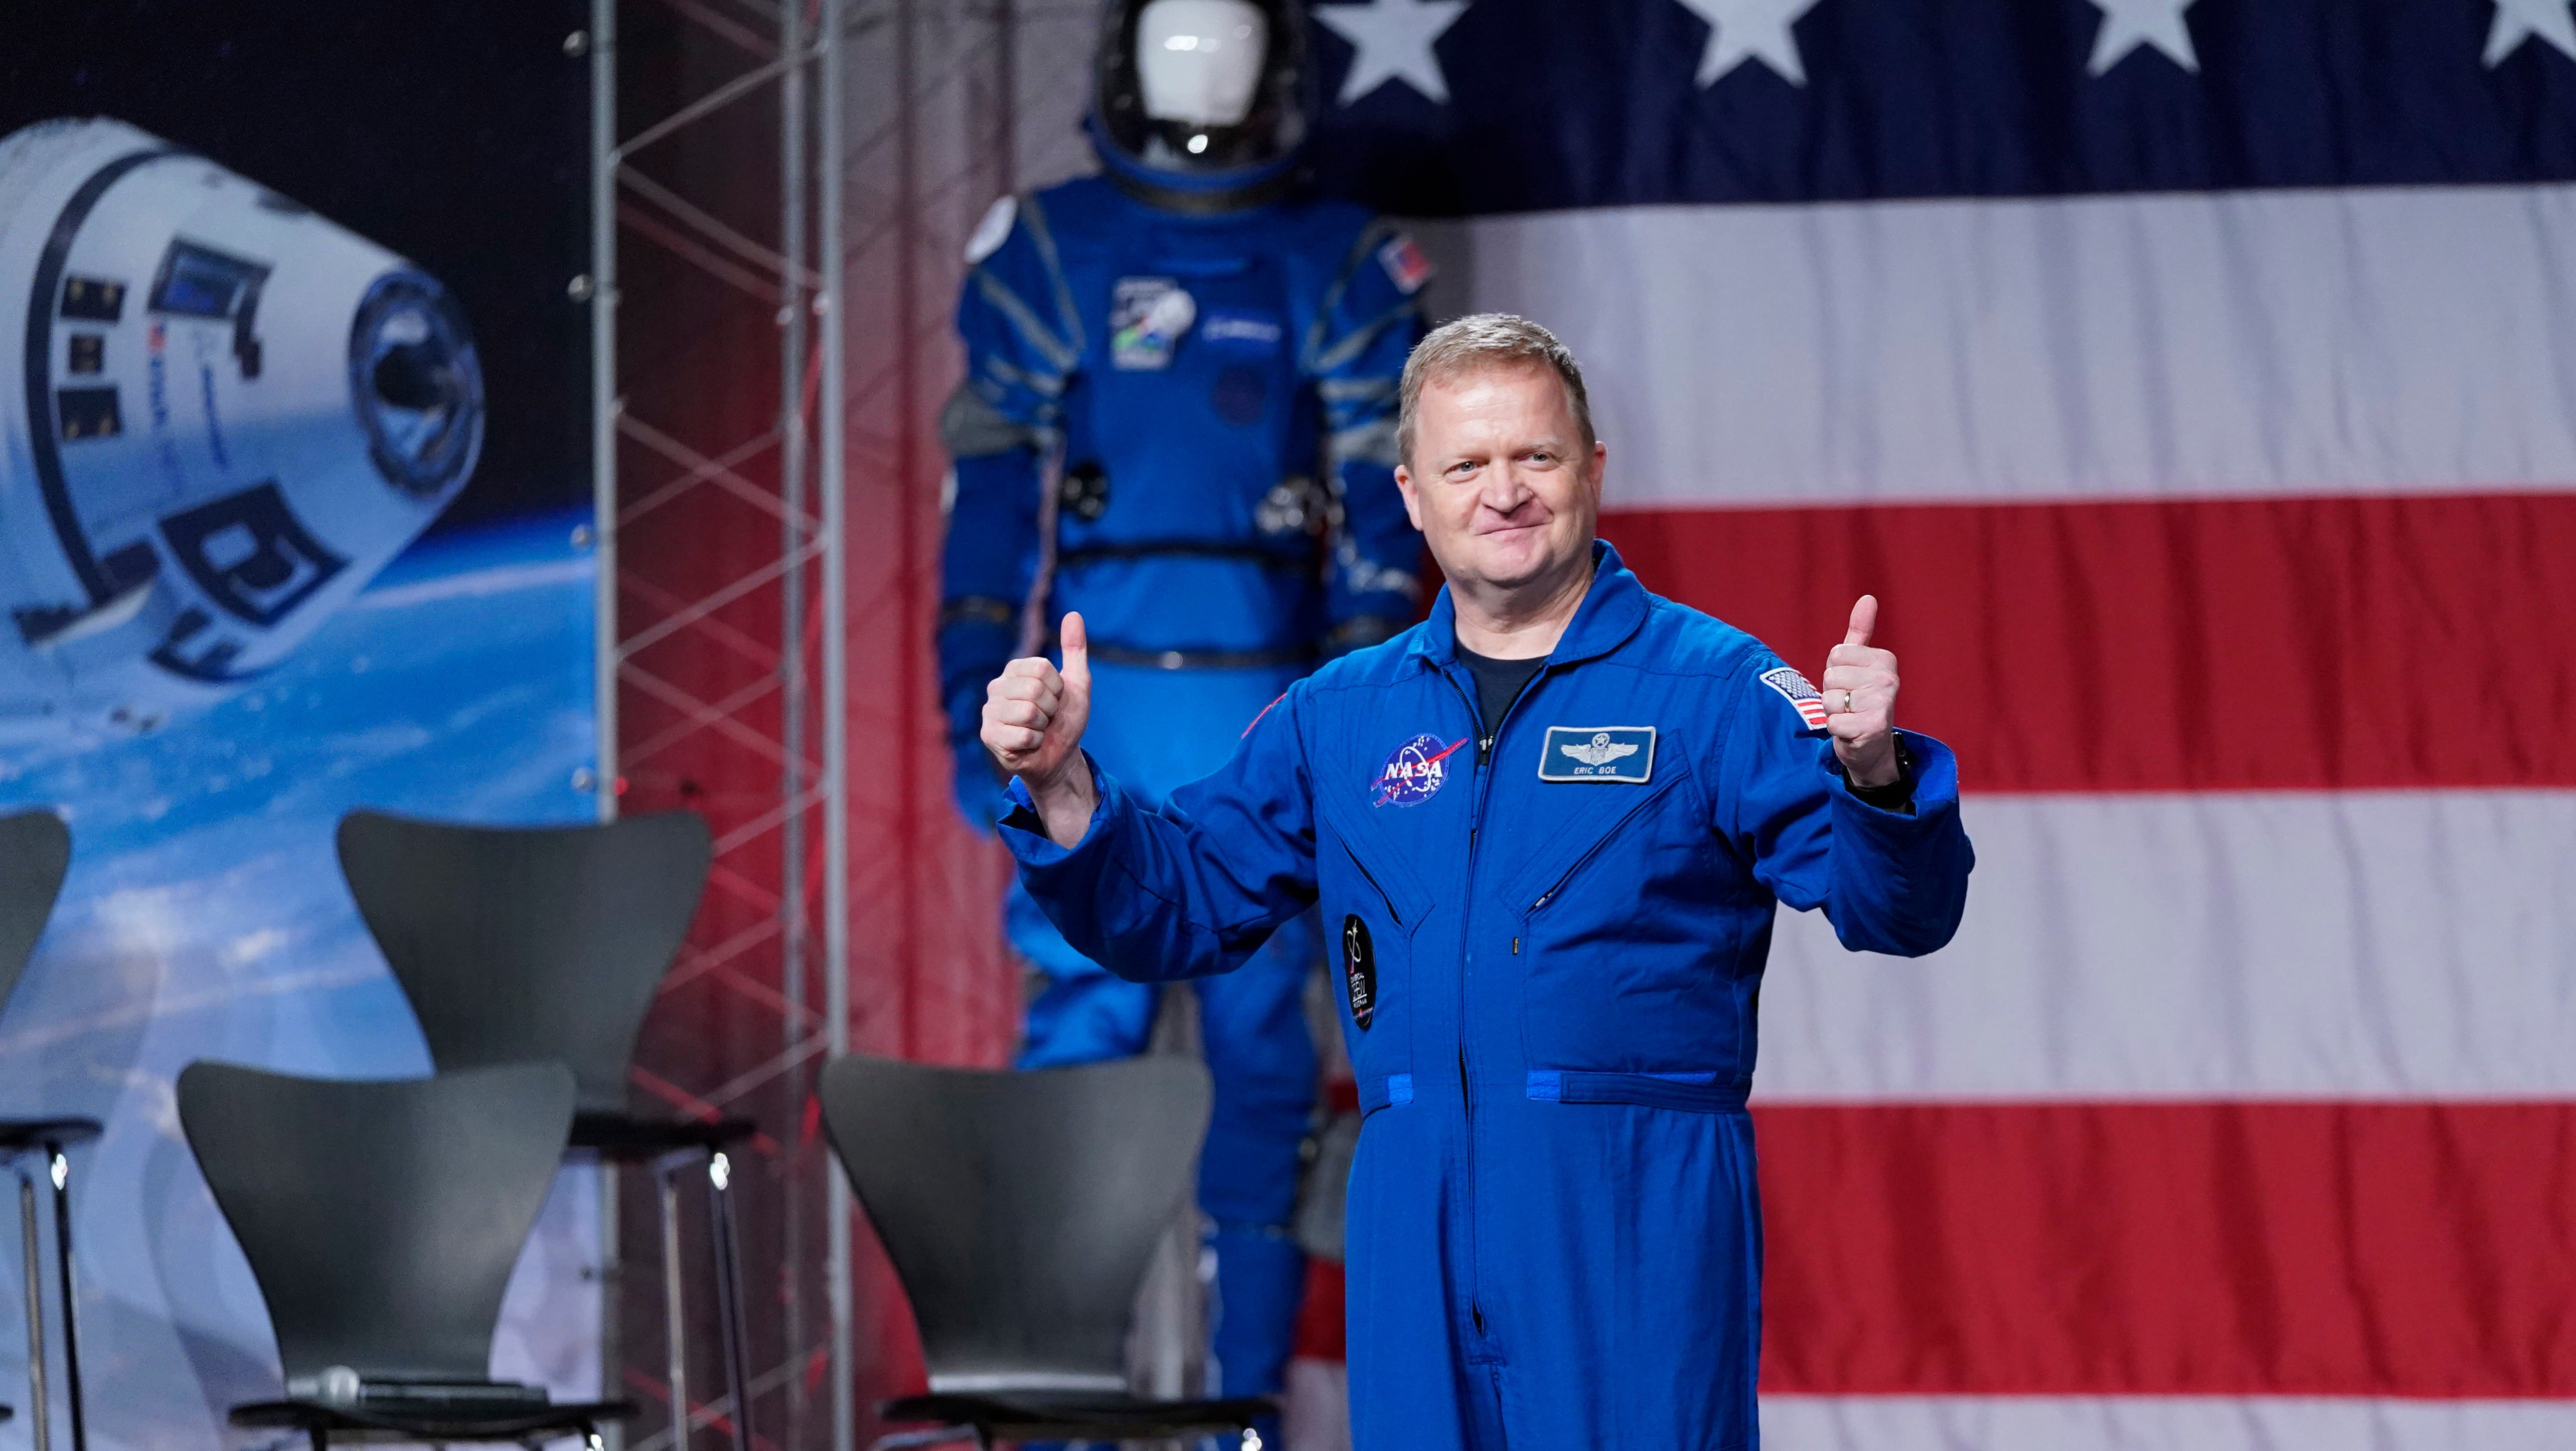 NASA Pulls Astronaut Eric Boe From First Boeing Starliner Crewed Flight, Mike Fincke Will Fly Instead